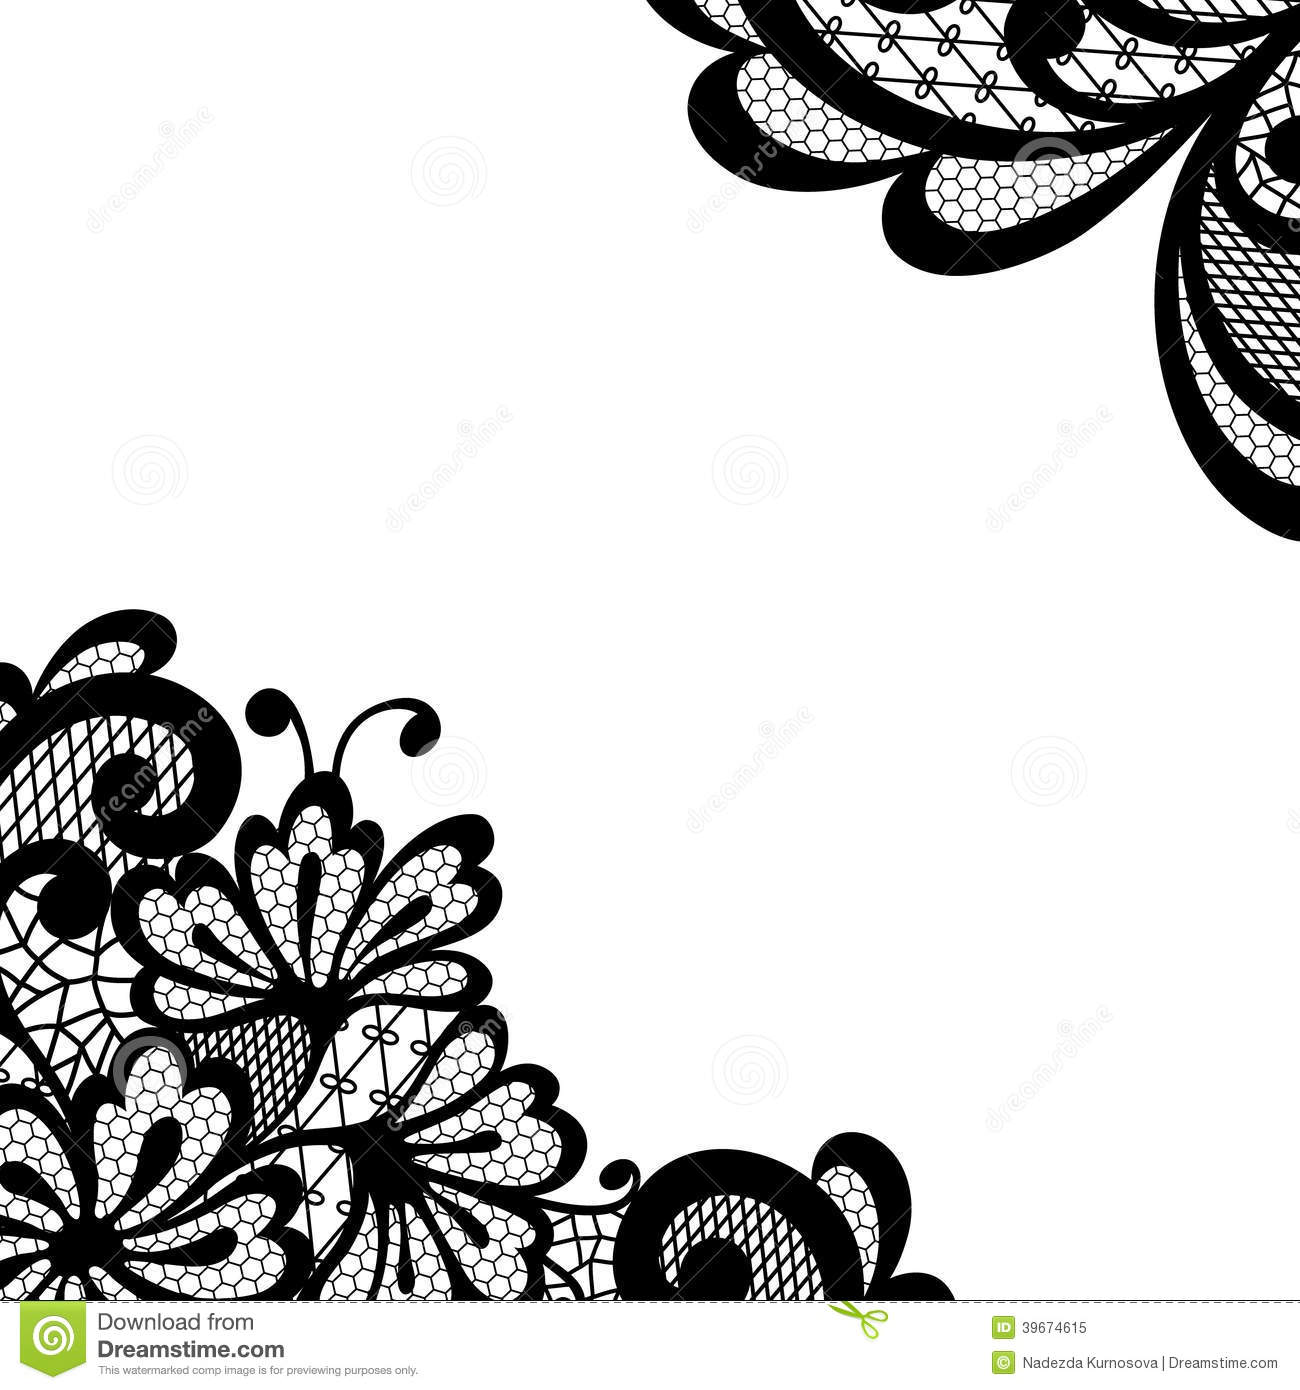 Black Vector Lace Corner Stock Vector - Image: 39674615